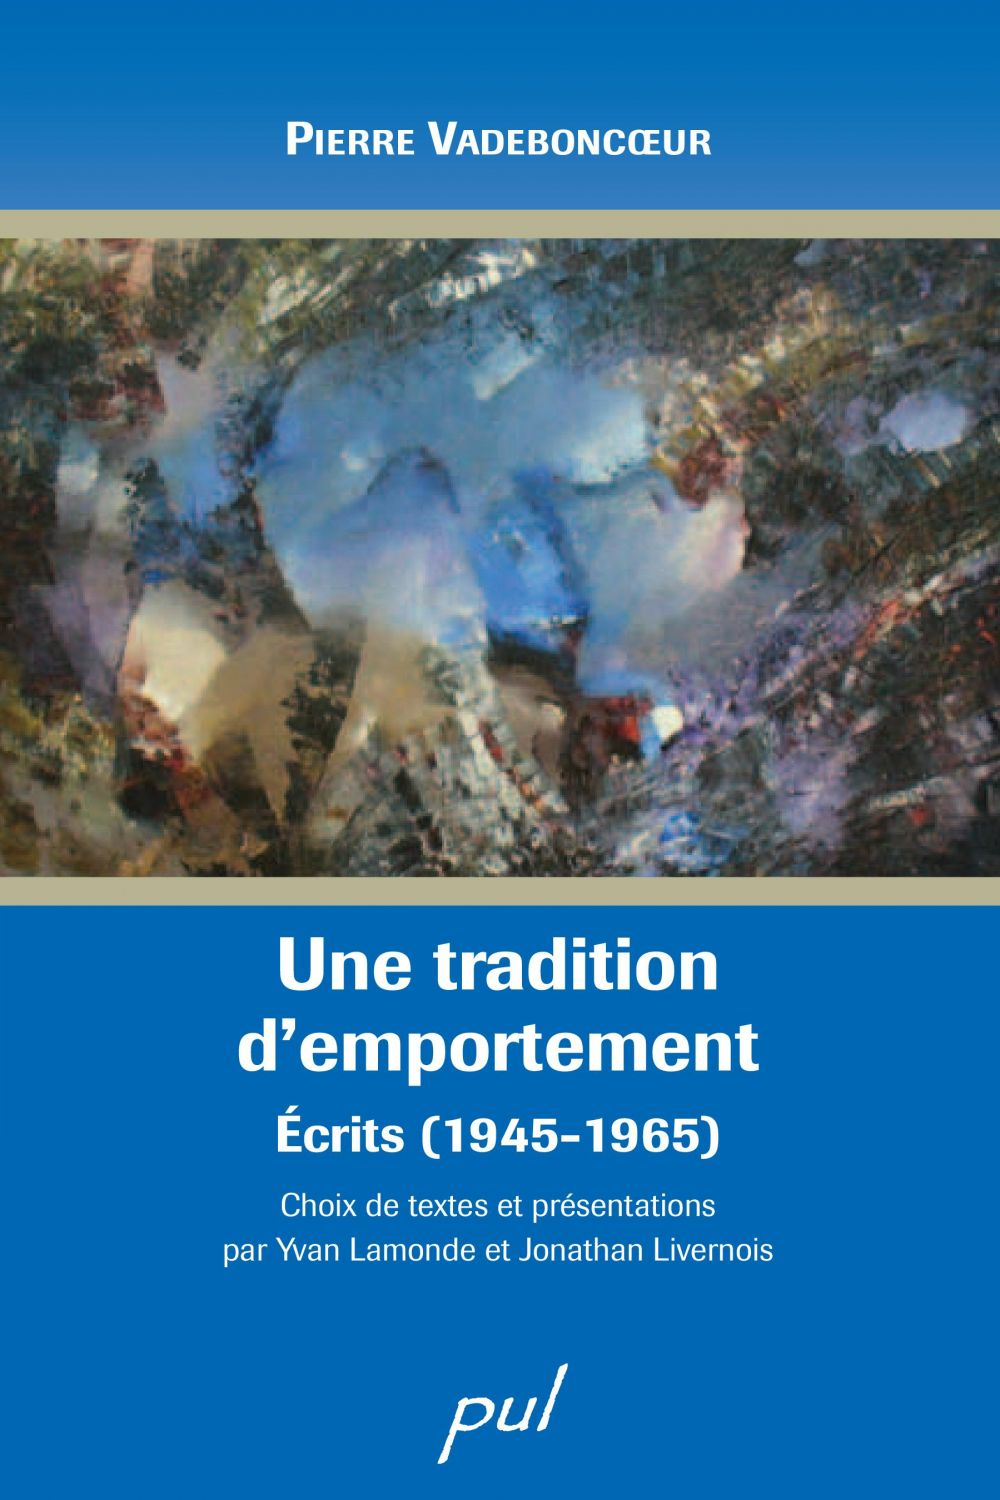 Une tradition d'emportement